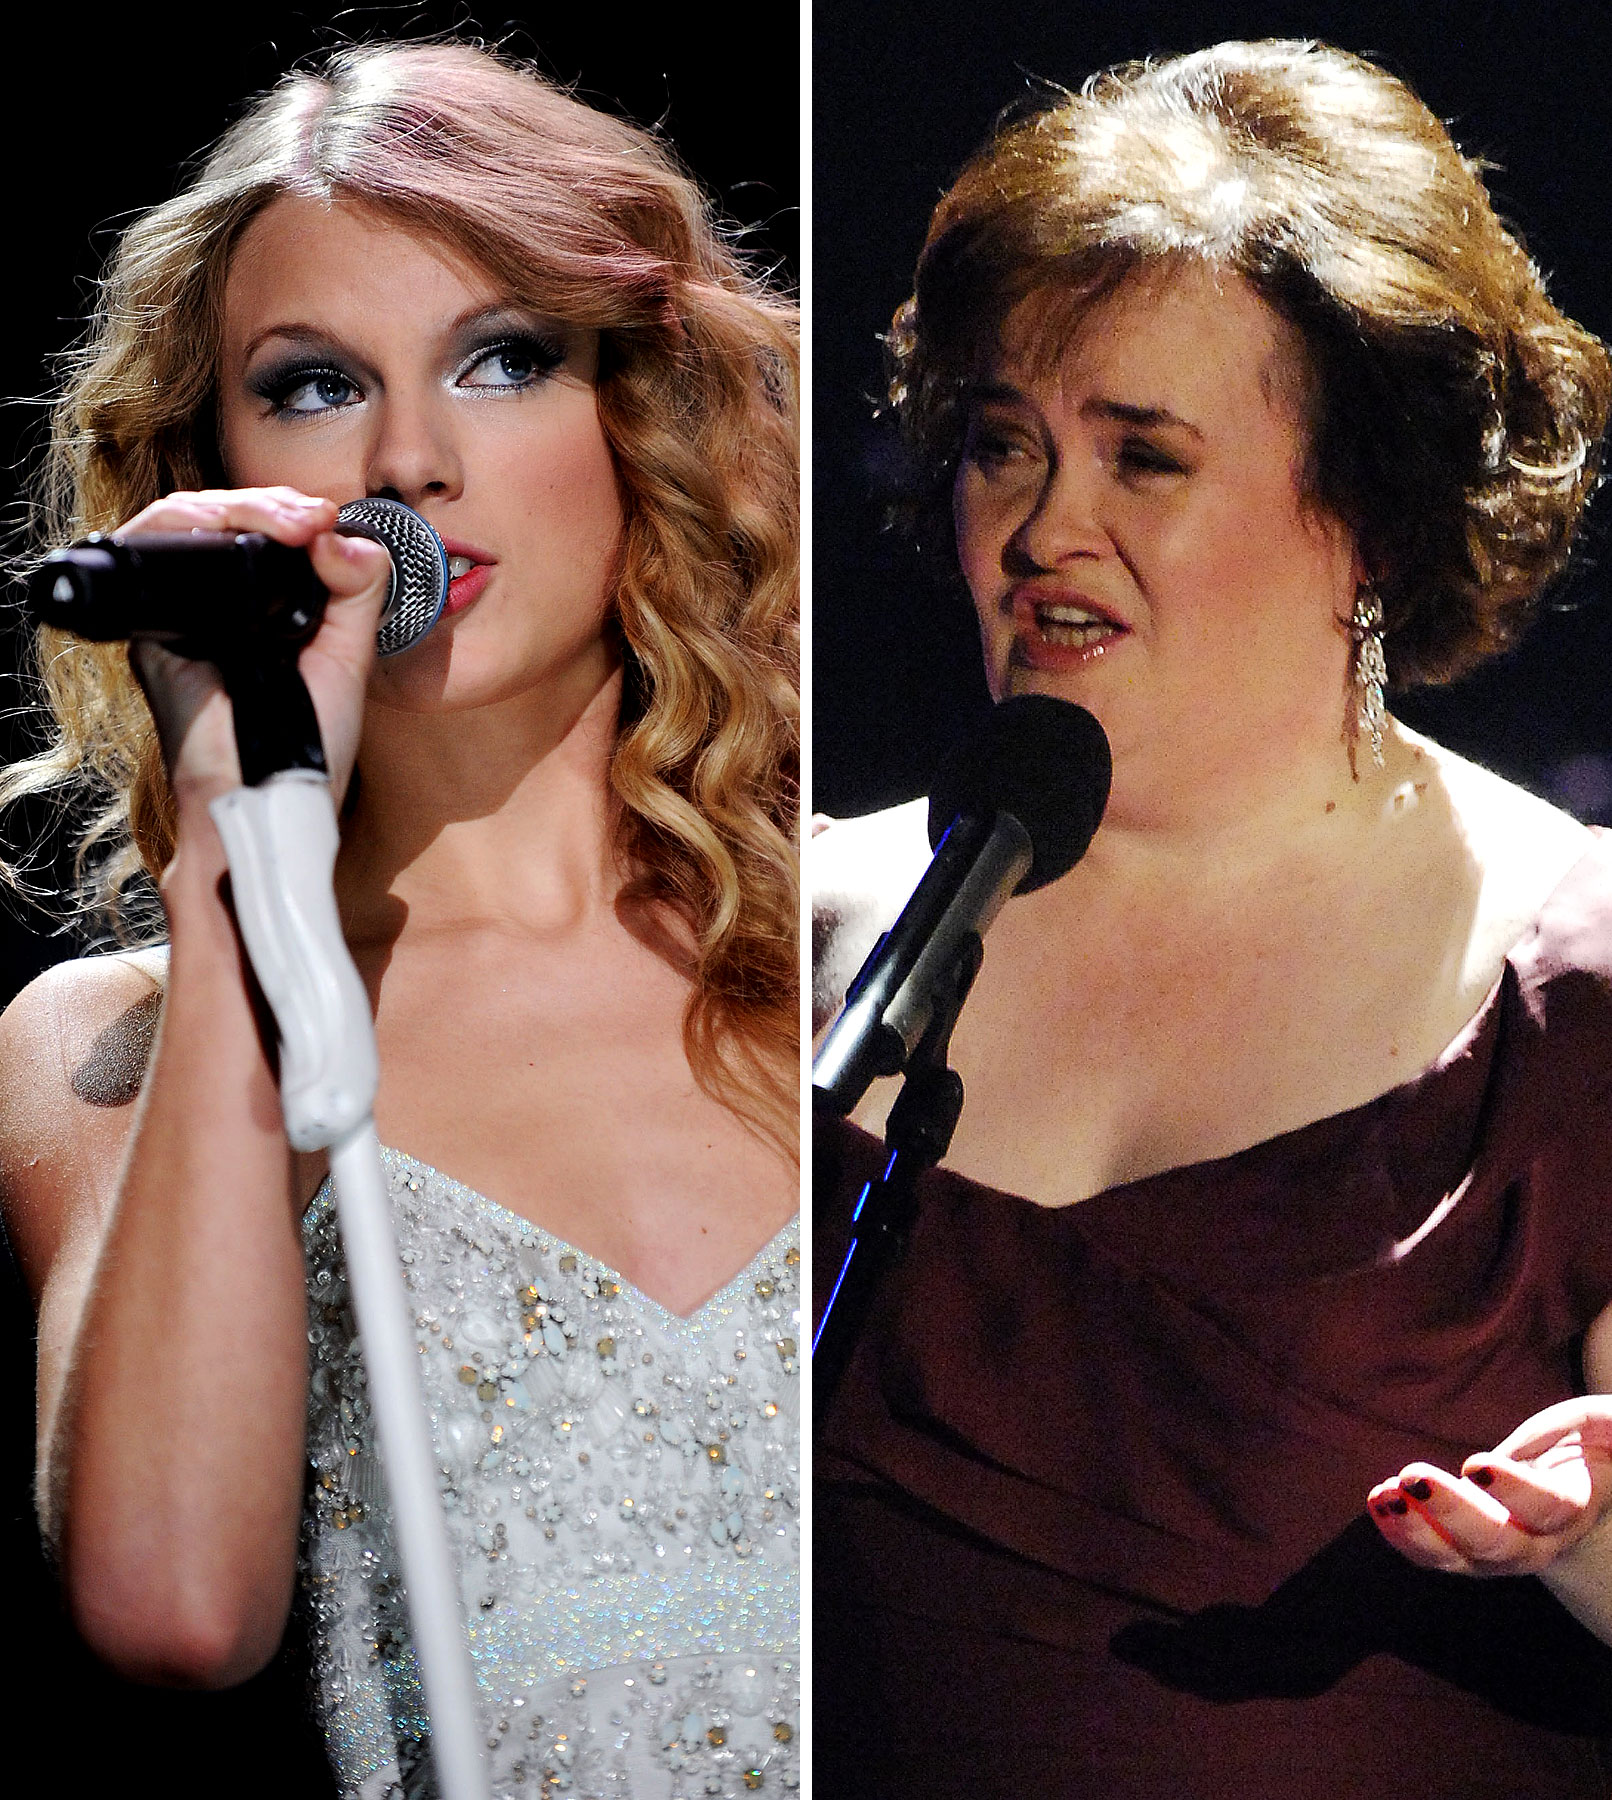 Taylor Swift vs. Susan Boyle In Epic Battle For Year's Top-Selling Artist